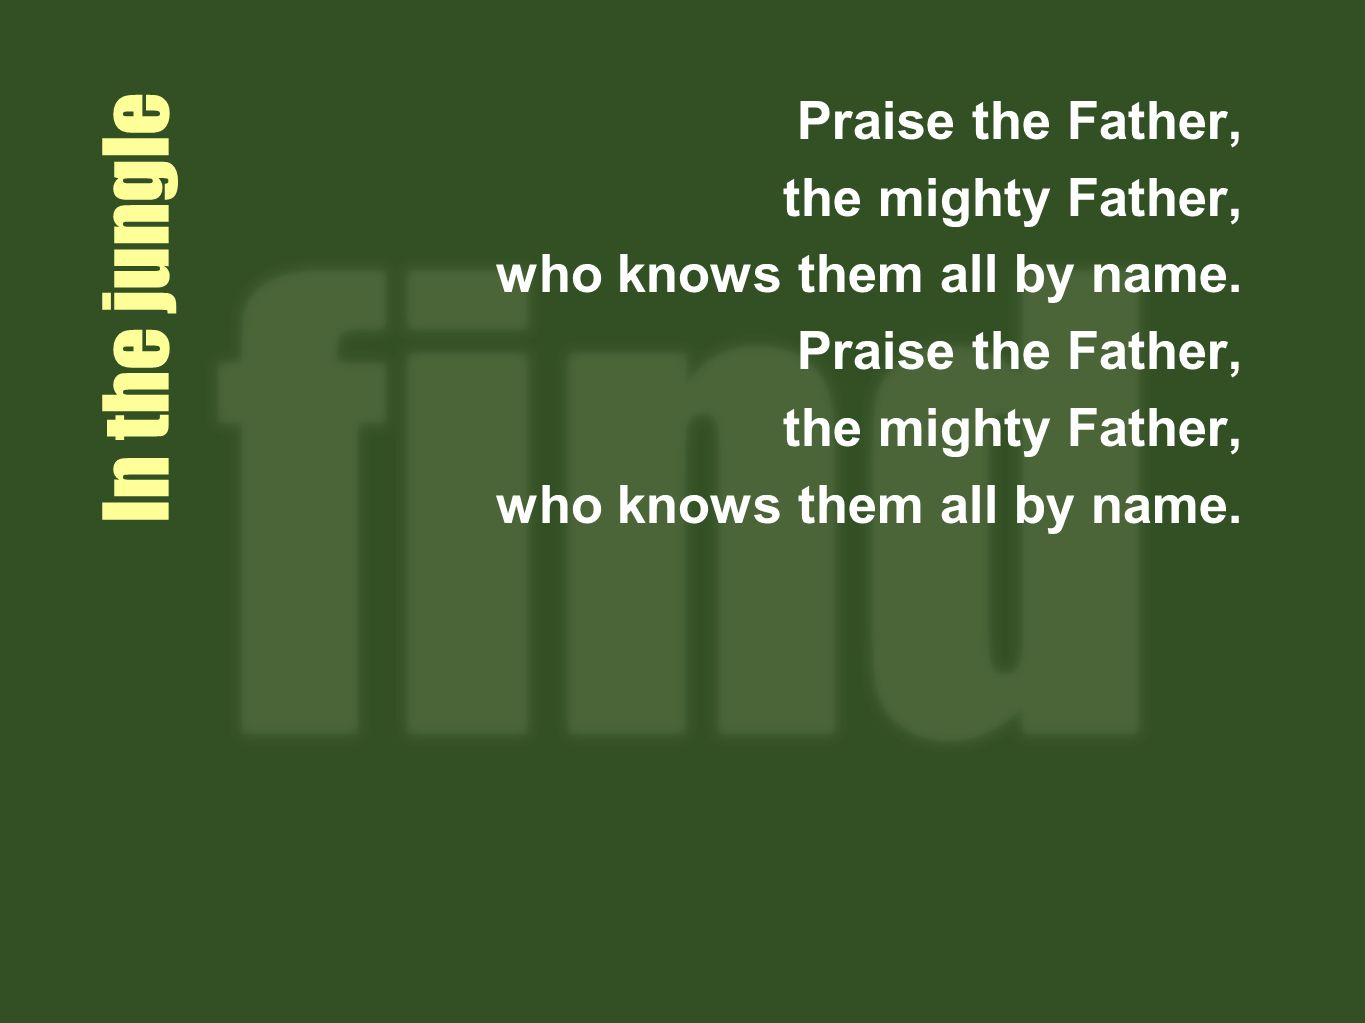 In the jungle Praise the Father, the mighty Father, who knows them all by name.